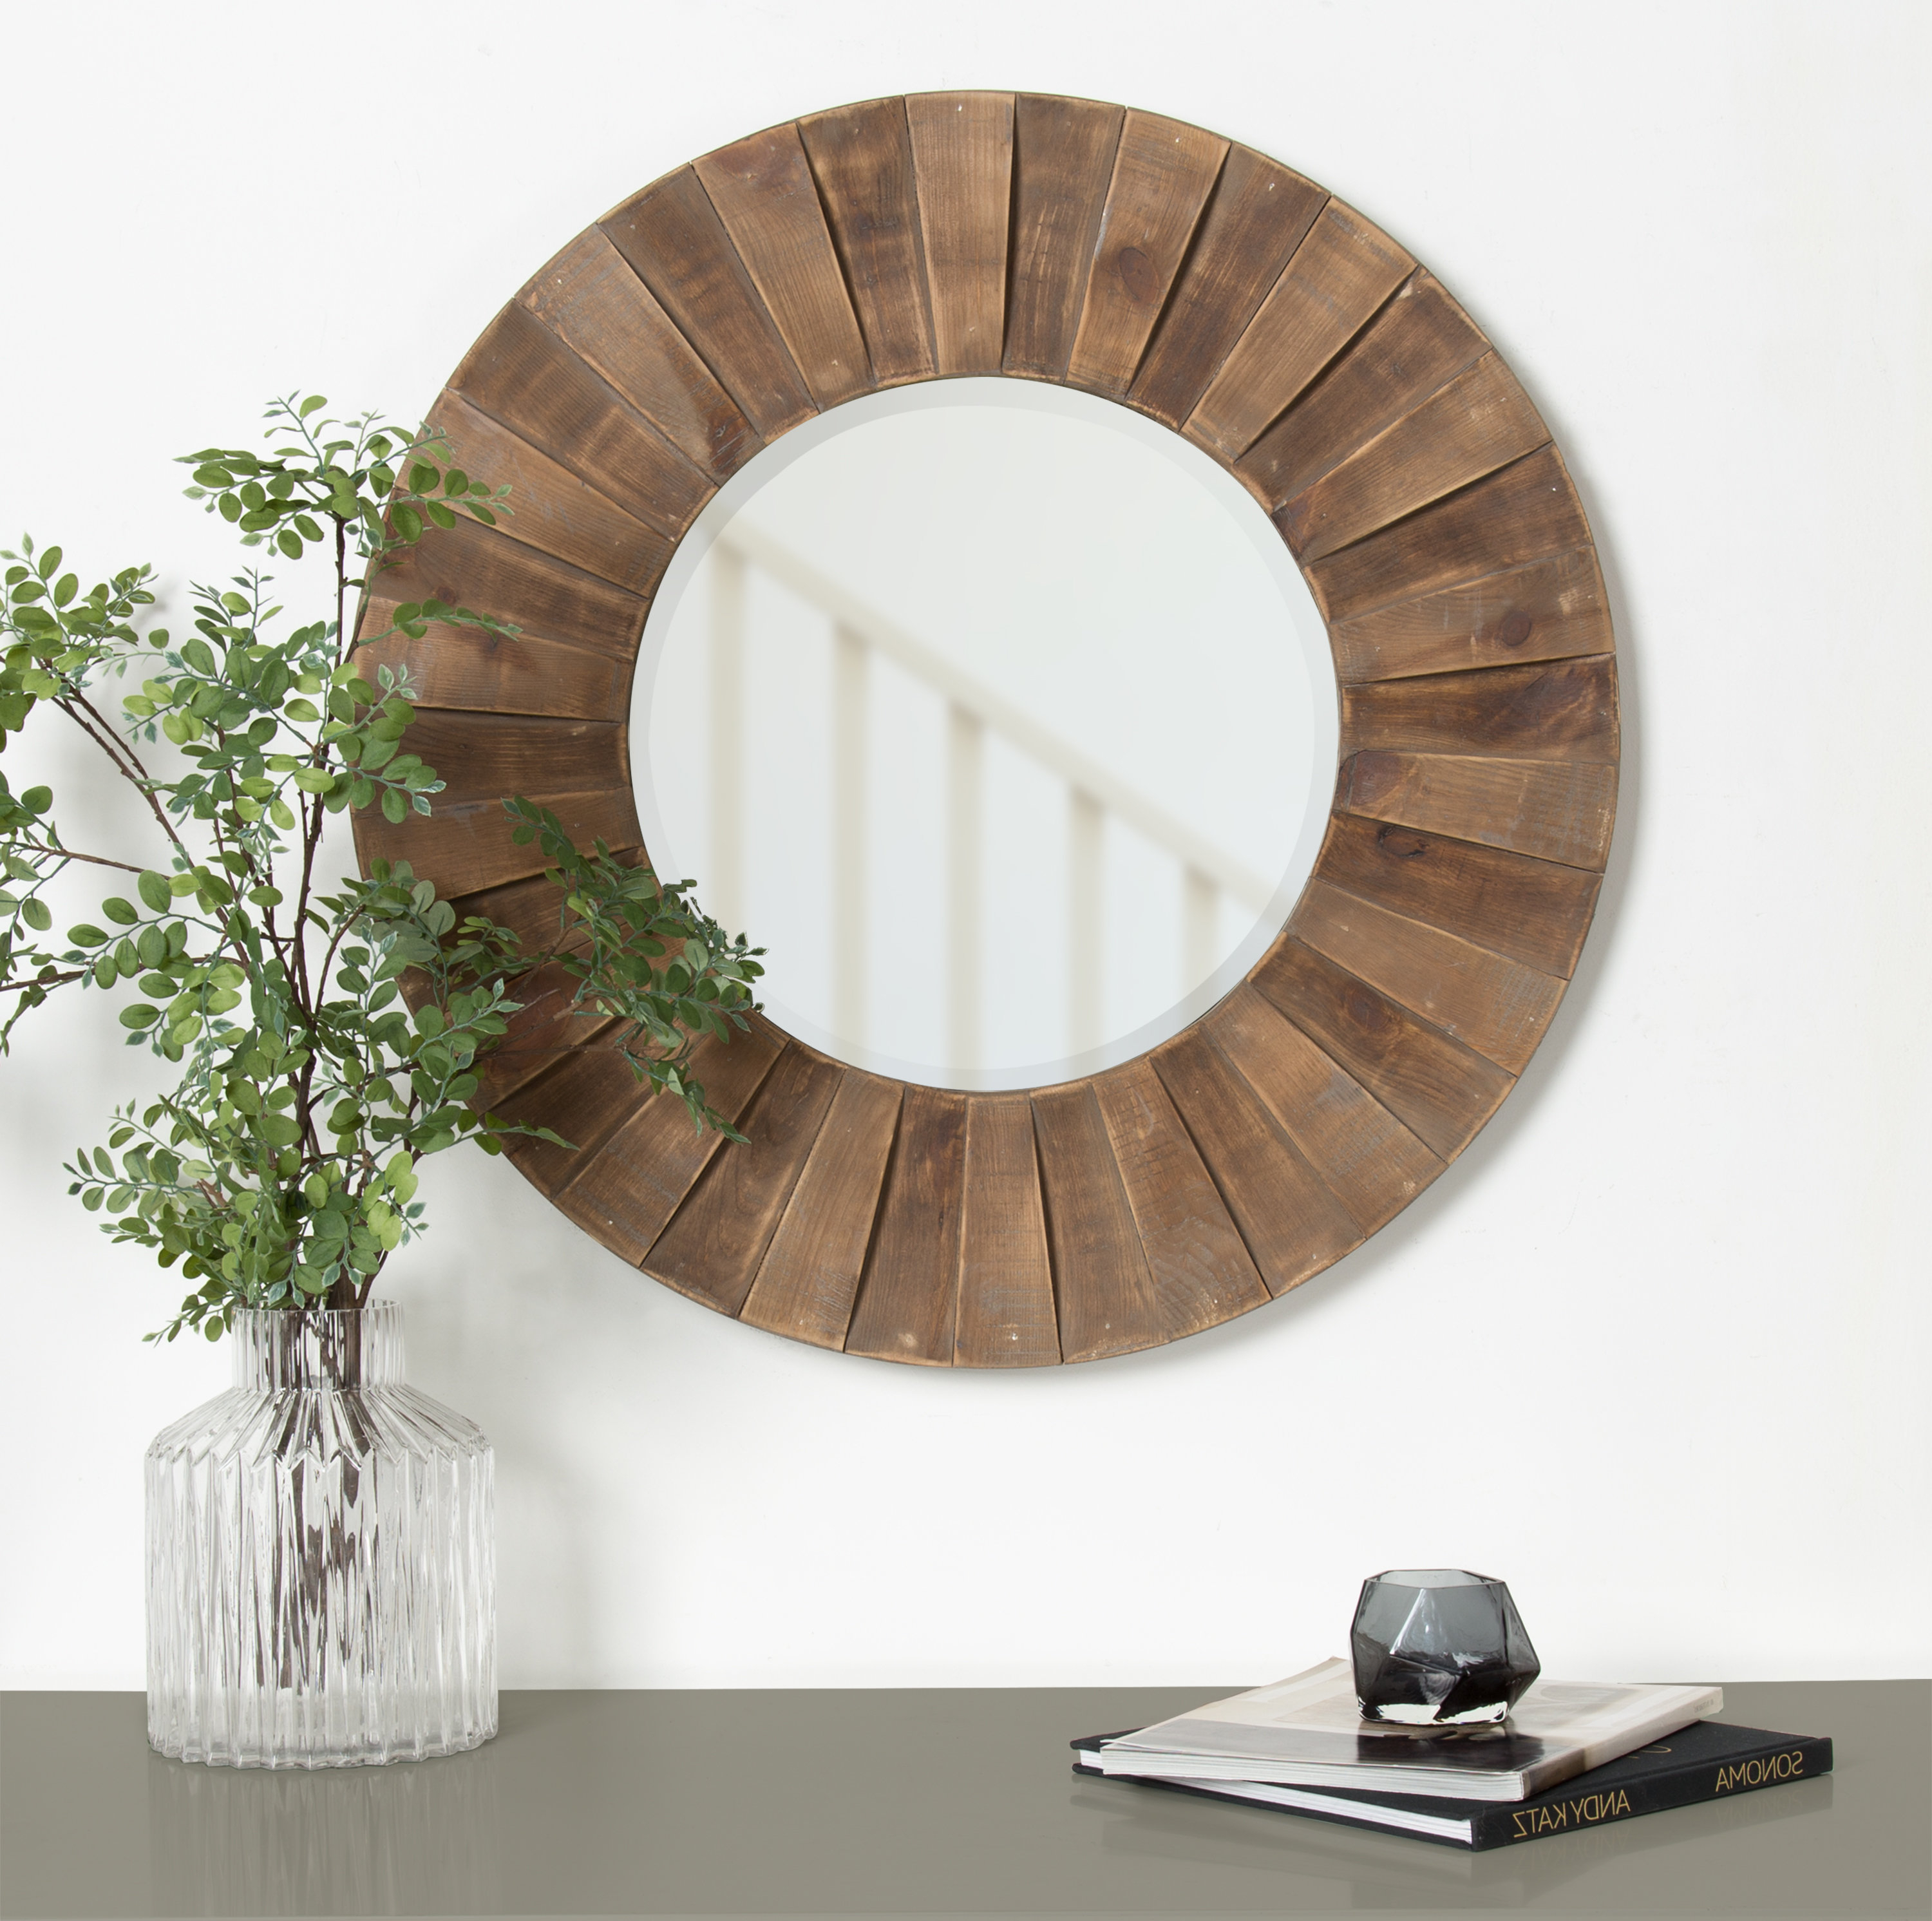 Widely Used Wood Framed Wall Mirrors With Regard To Carla Sunburst Natural Wood Frame Accent Wall Mirror (View 18 of 20)